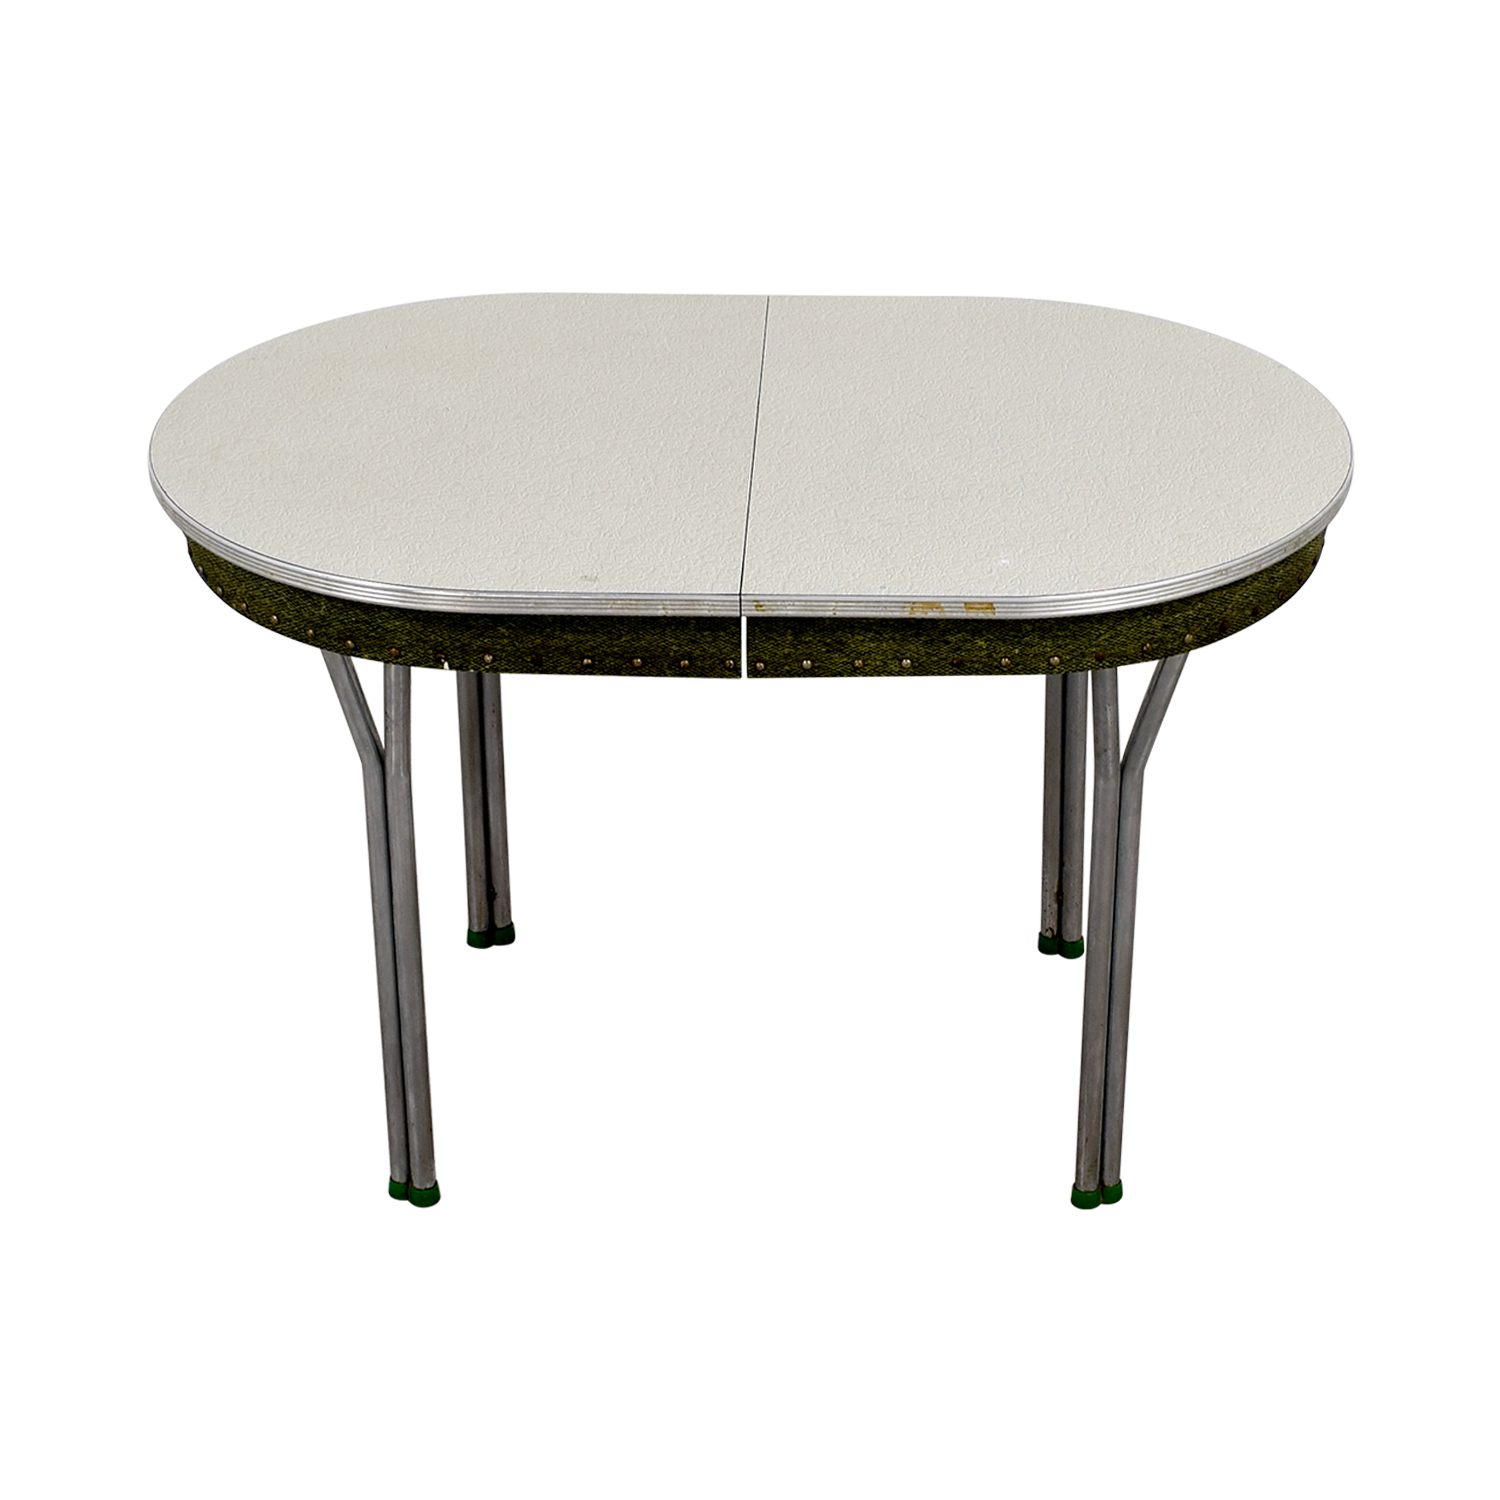 Vintage 1950s Green Formica Table with Inserts coupon